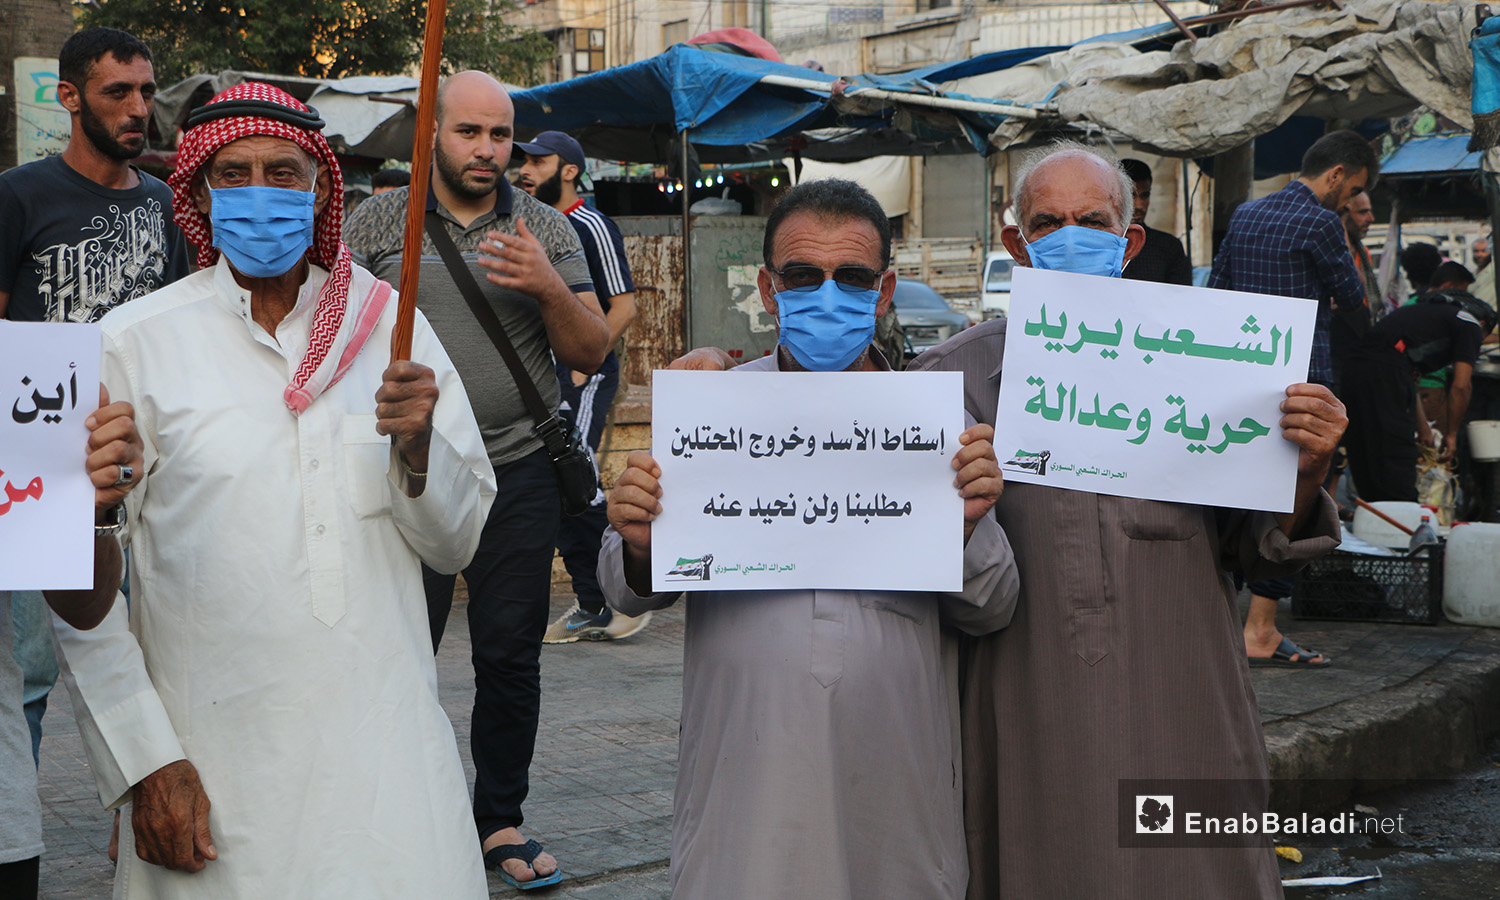 A protest in Idlib city against fuel prices' increase and high living costs – 04 August 2020 (Enab Baladi / Anas al-Khouli)